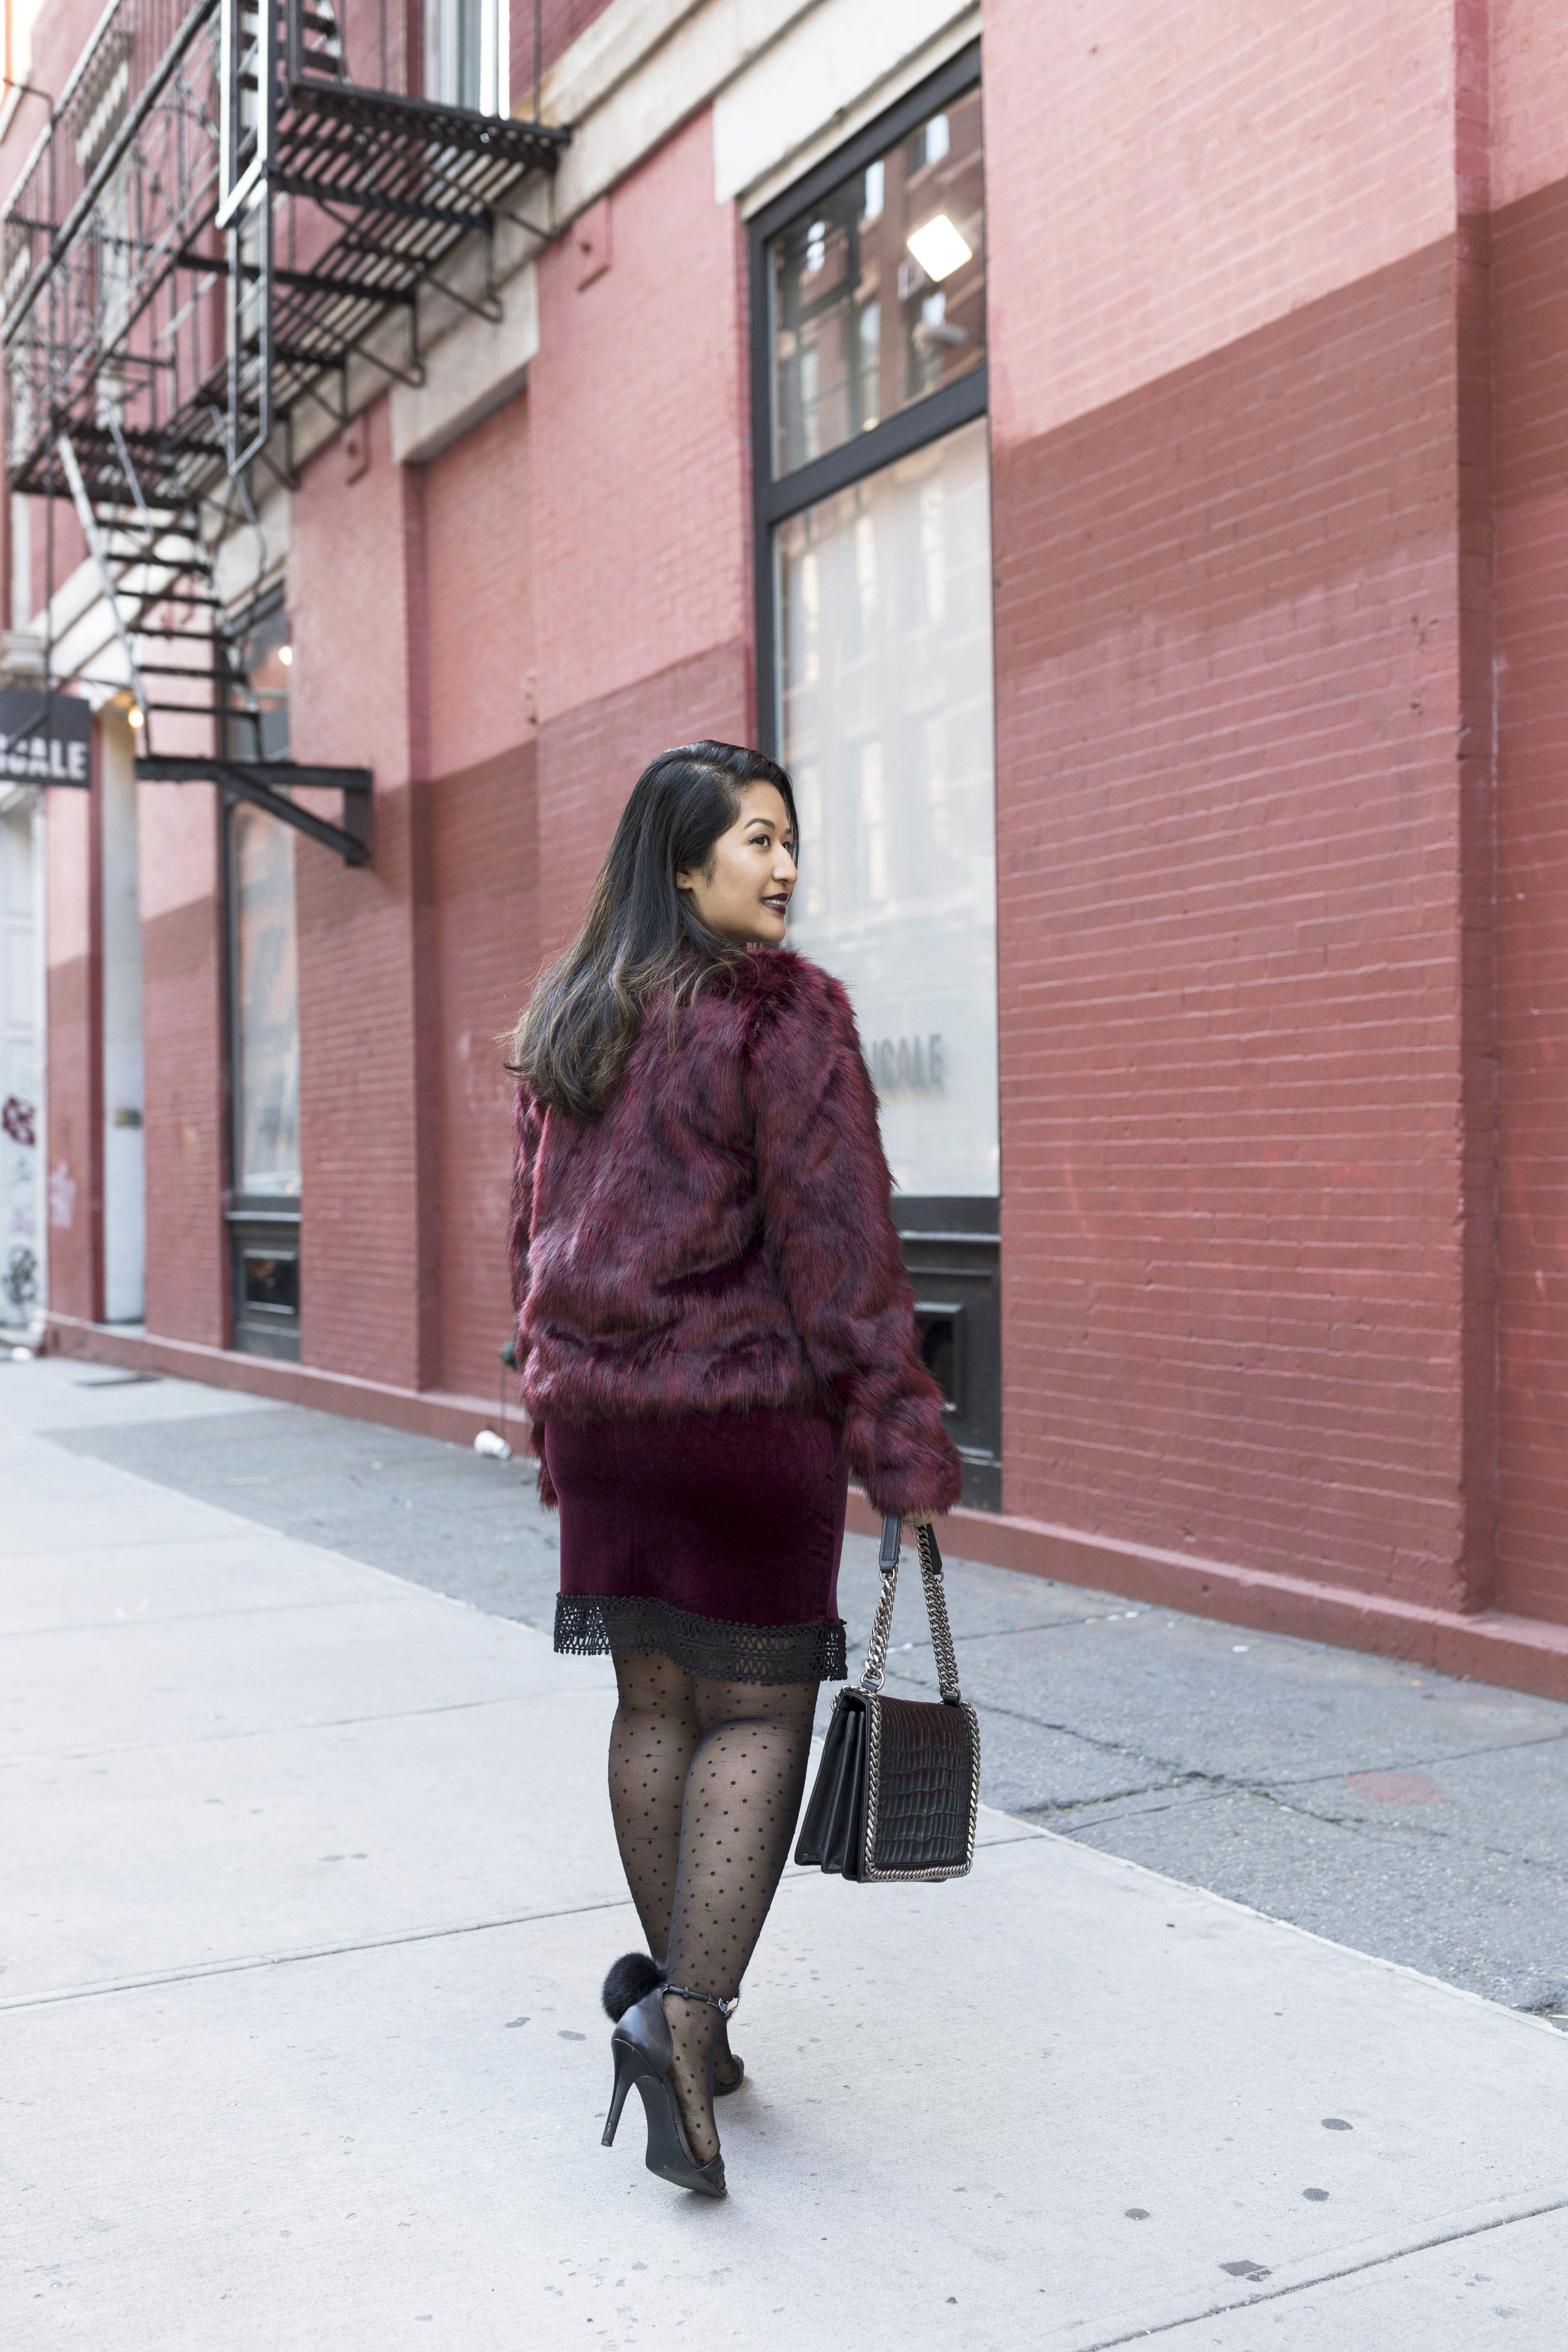 Krity S x Holiday Outfit x Century 21 Burgundy Velvet Dress and Faux Fur3.jpg